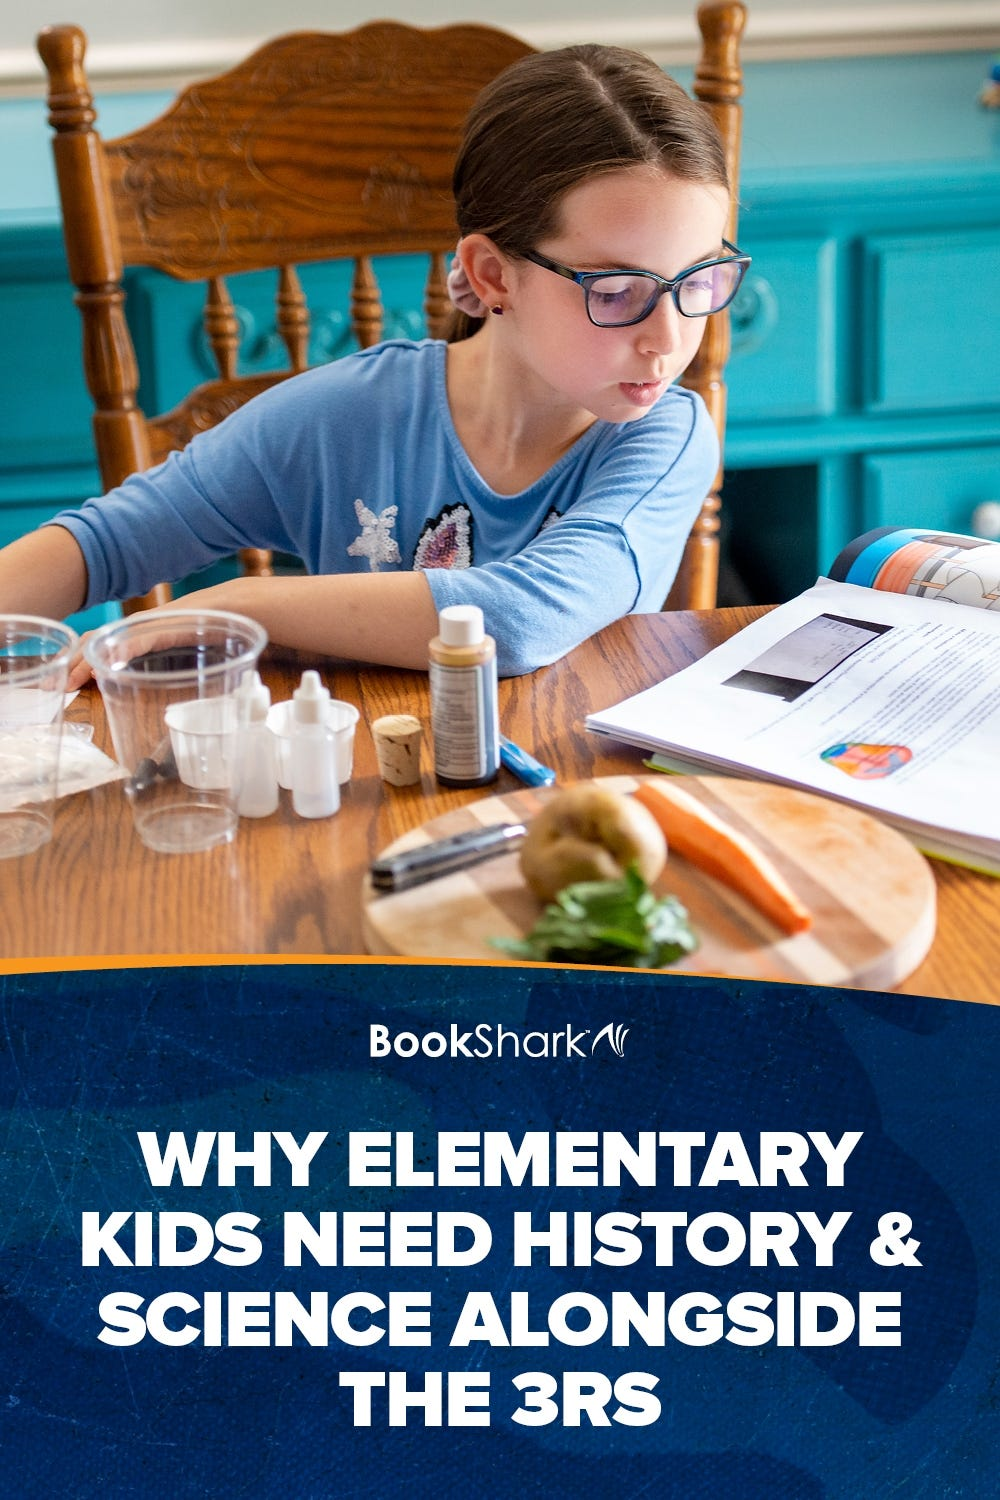 Why Elementary Kids Need History & Science Alongside the 3Rs